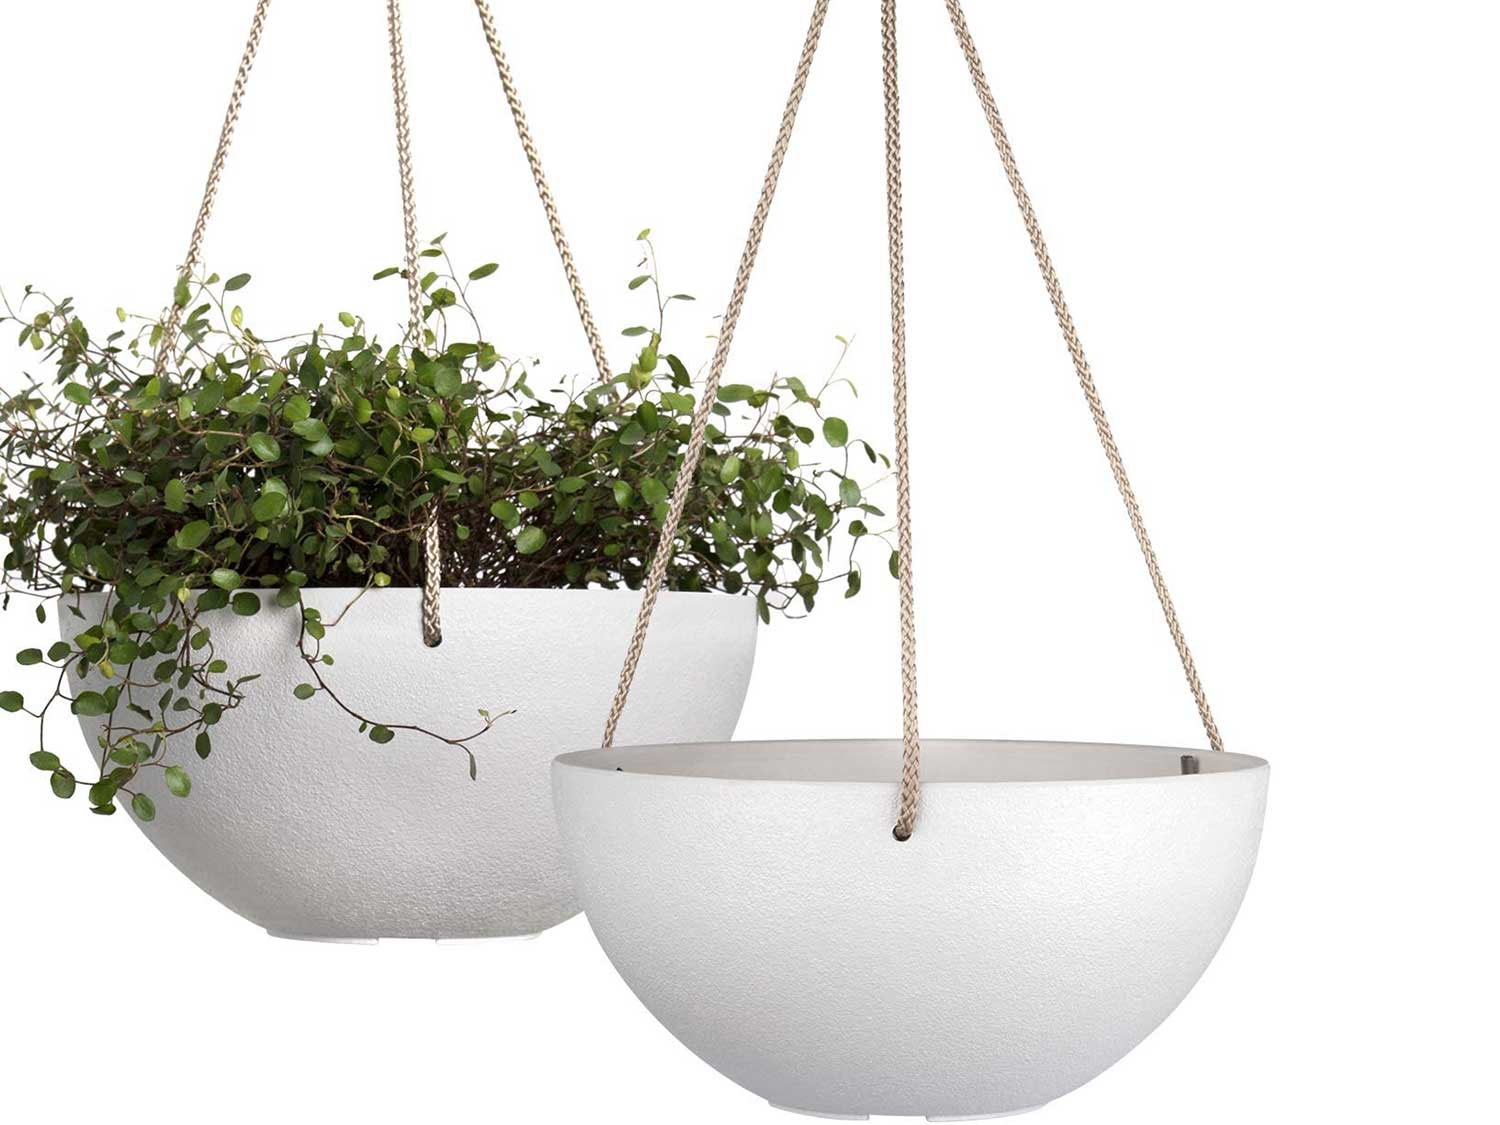 LA JOLIE MUSE White Hanging Planter Basket- 25 CM Indoor Outdoor Flower Pots, Plant Containers with Drainage Hole, Plant Pot for Hanging Plants, Pack 2